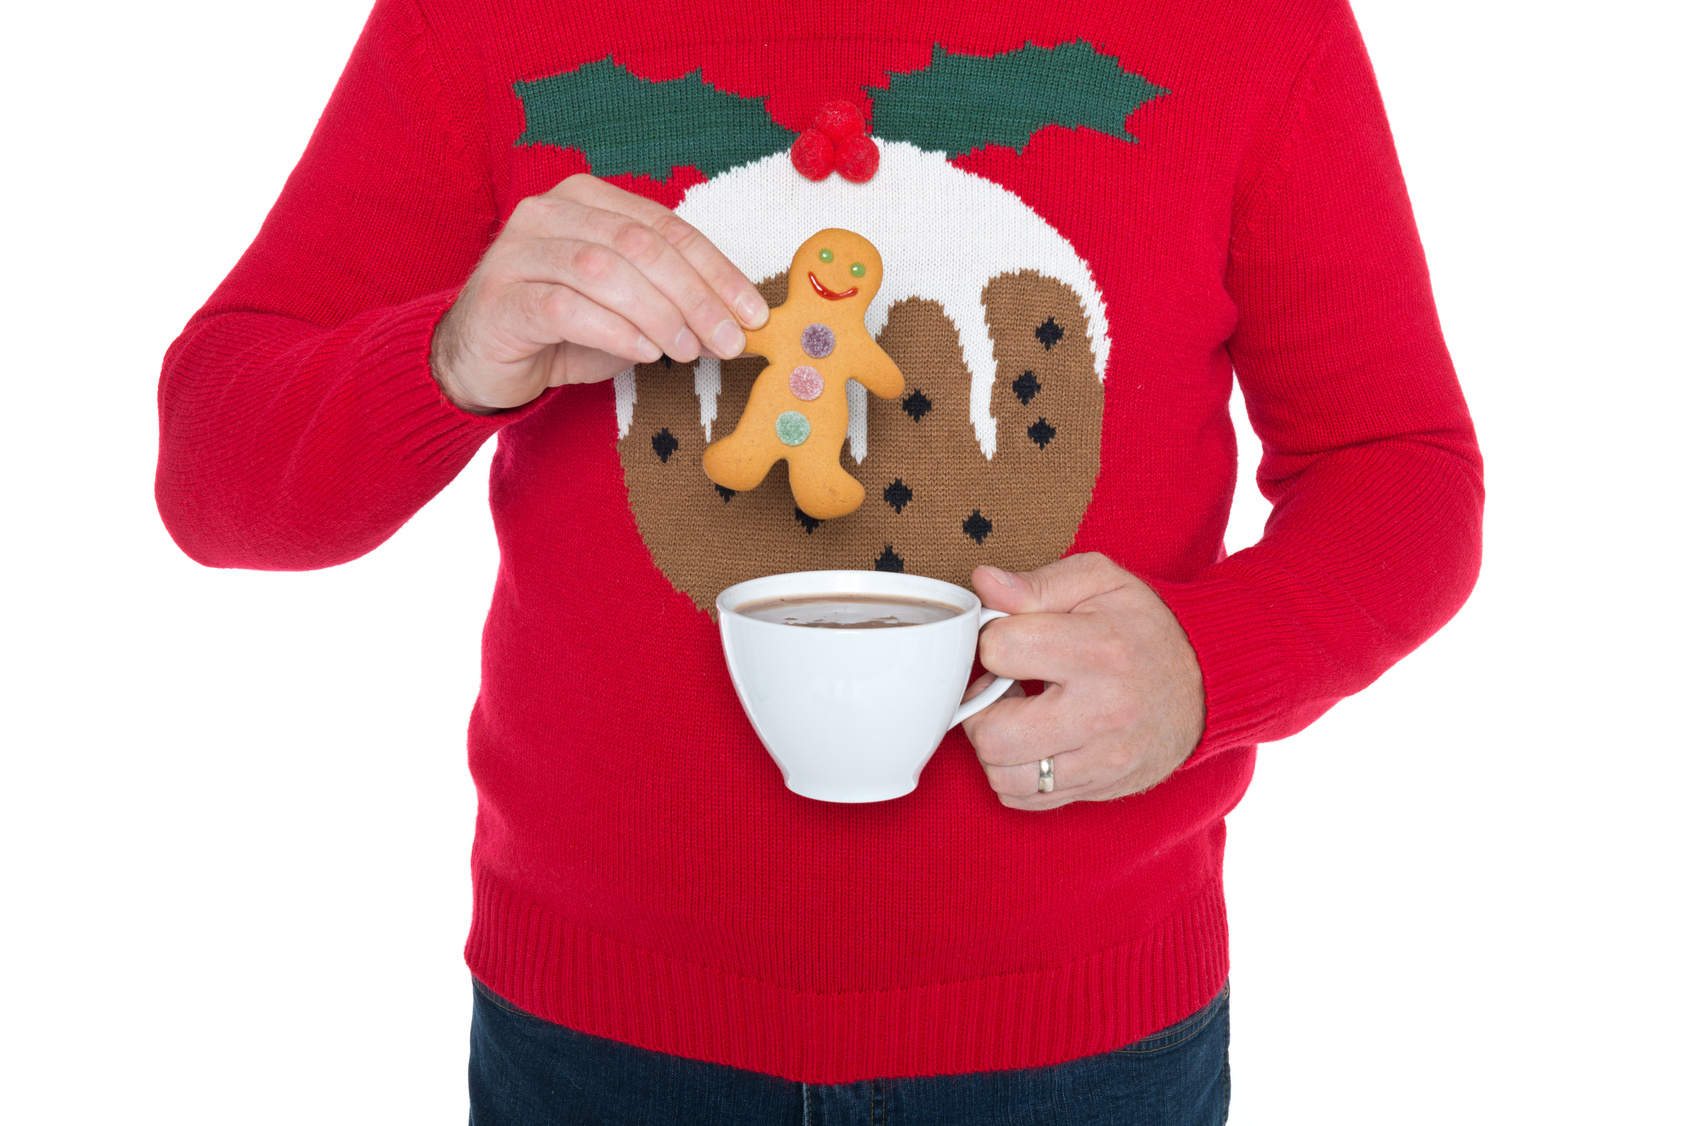 Christmas jumper with a Christmas pud on it